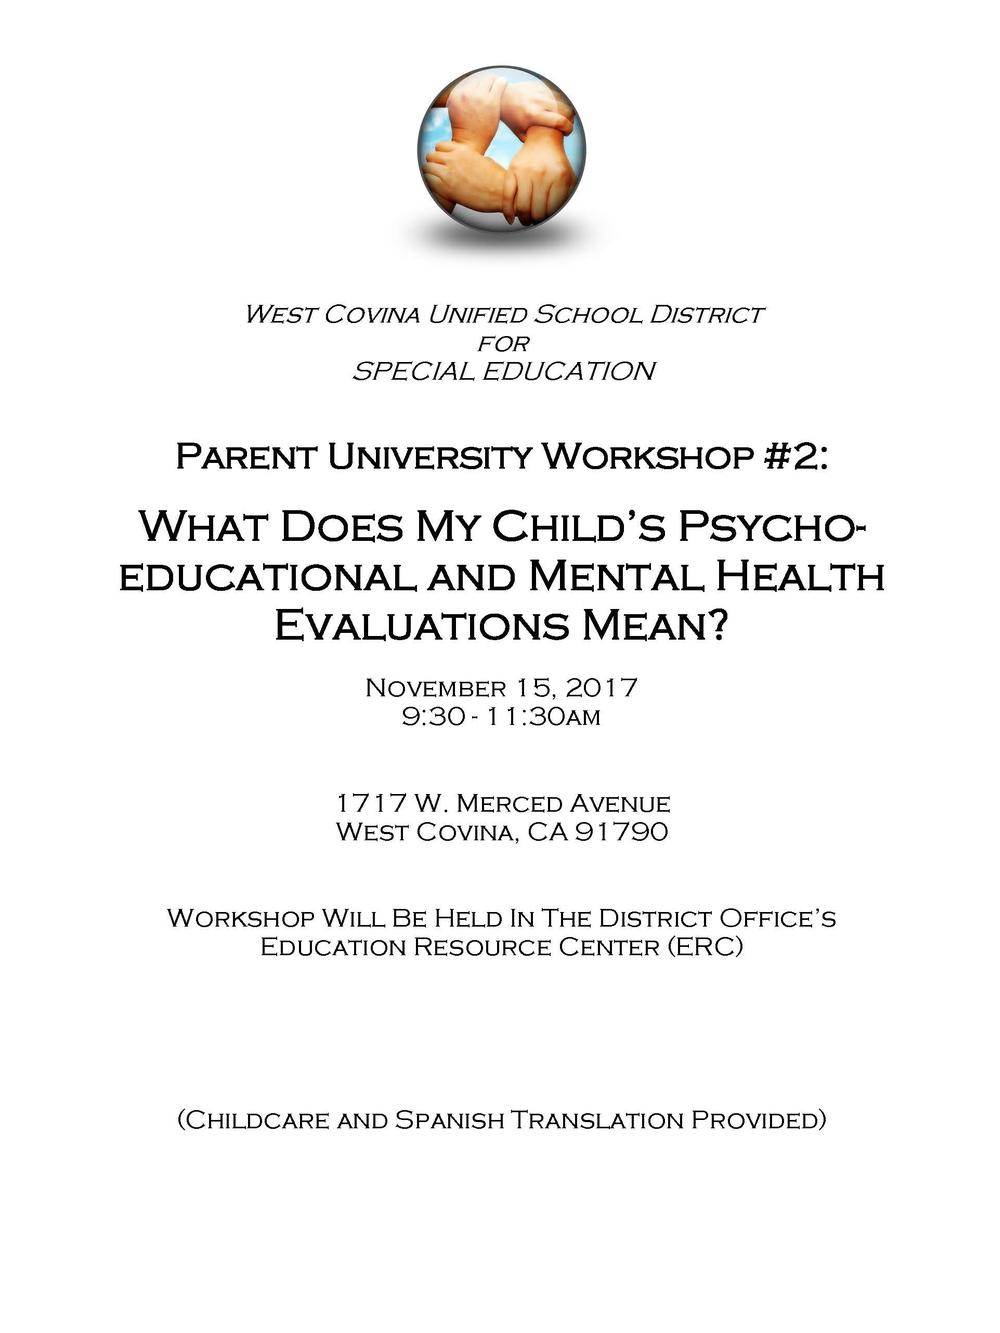 Parent workshop on psychoeducational and mental health evaluations